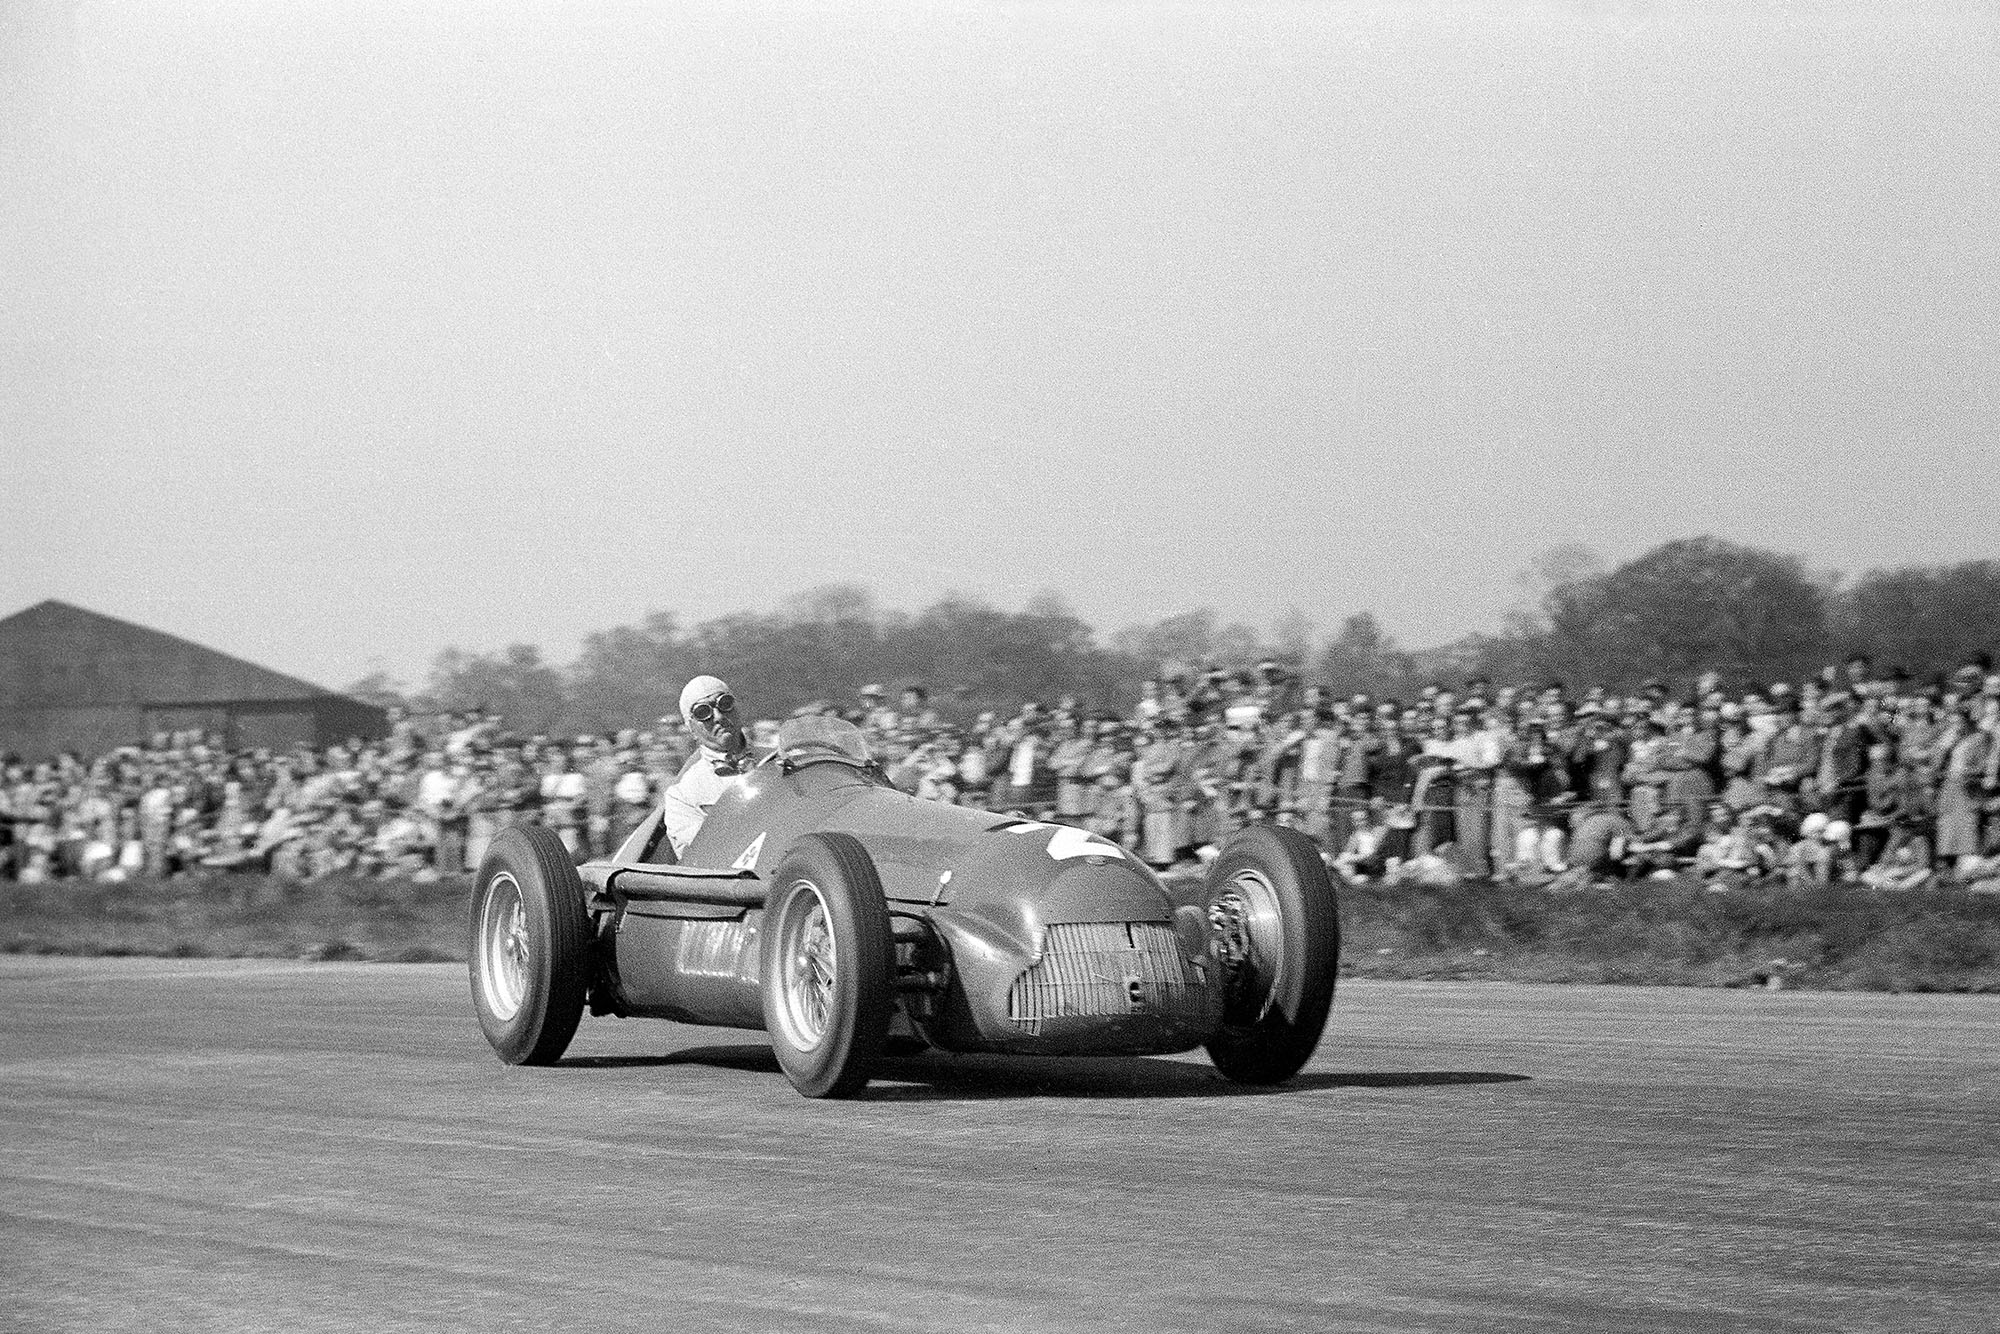 Giuseppe Farina during the 1950 British Grand Prix held at Silverstone